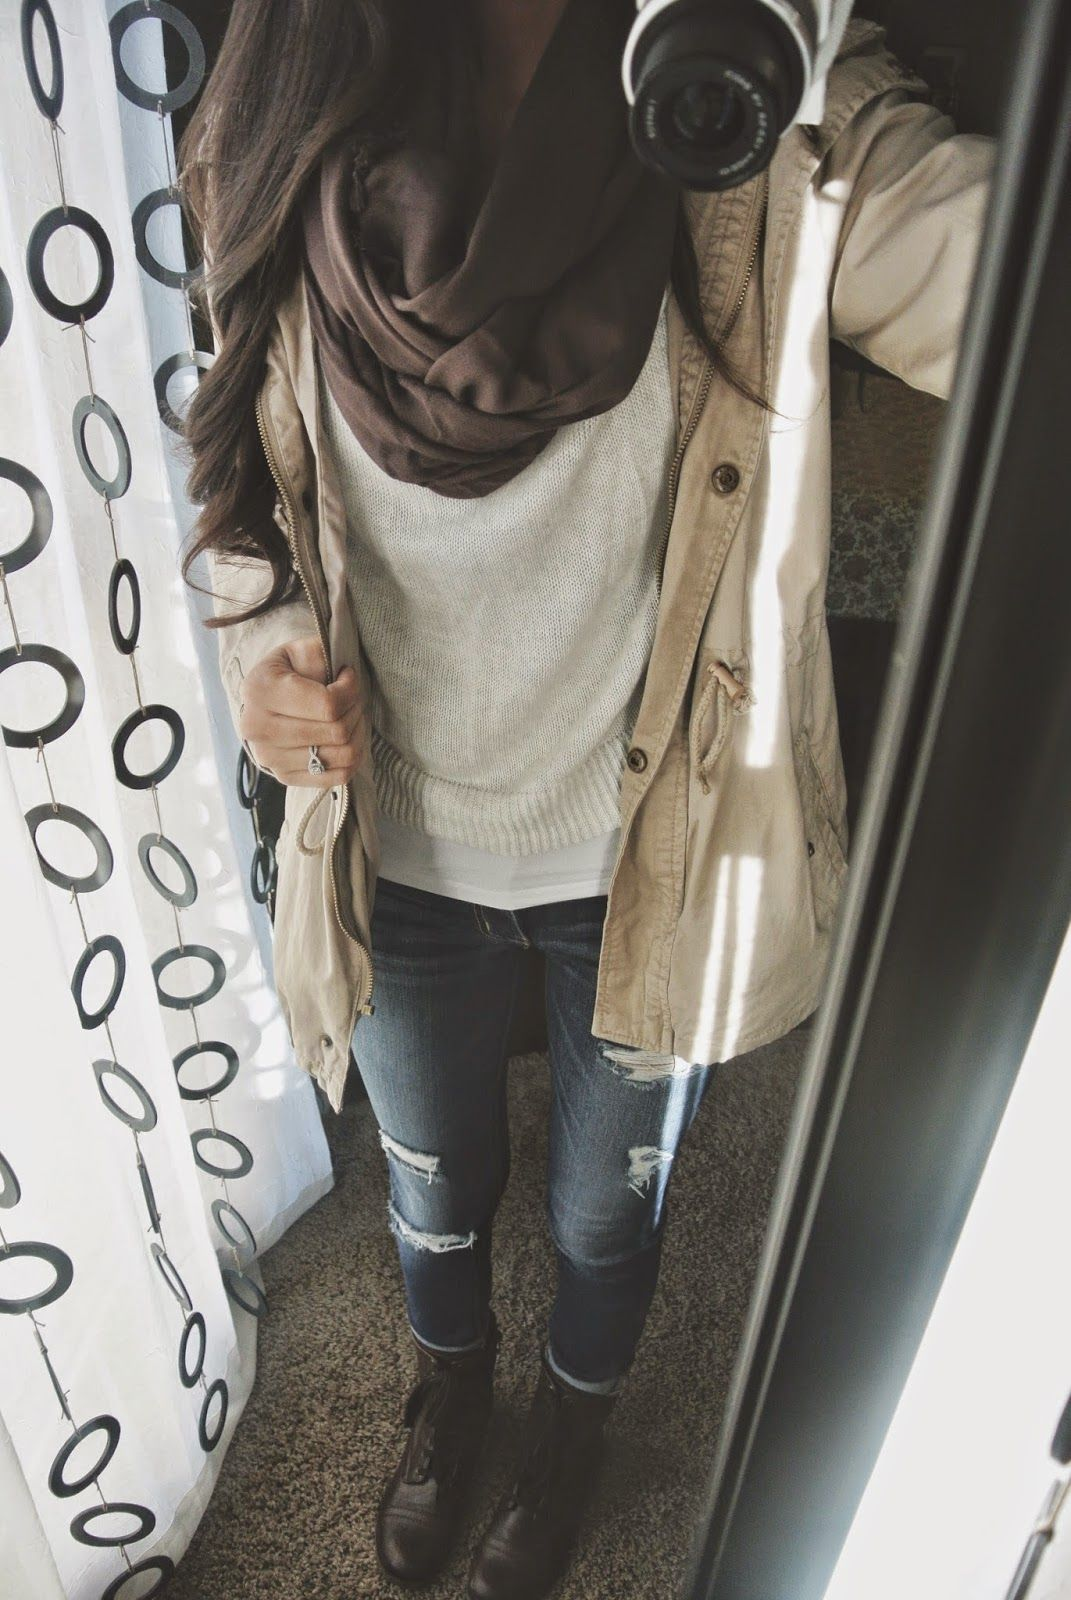 Rainy Day Outfit | Fall Outfit | Comfy | Warm | Trench Coat | Combat Boots | Trends | Pinterest ...